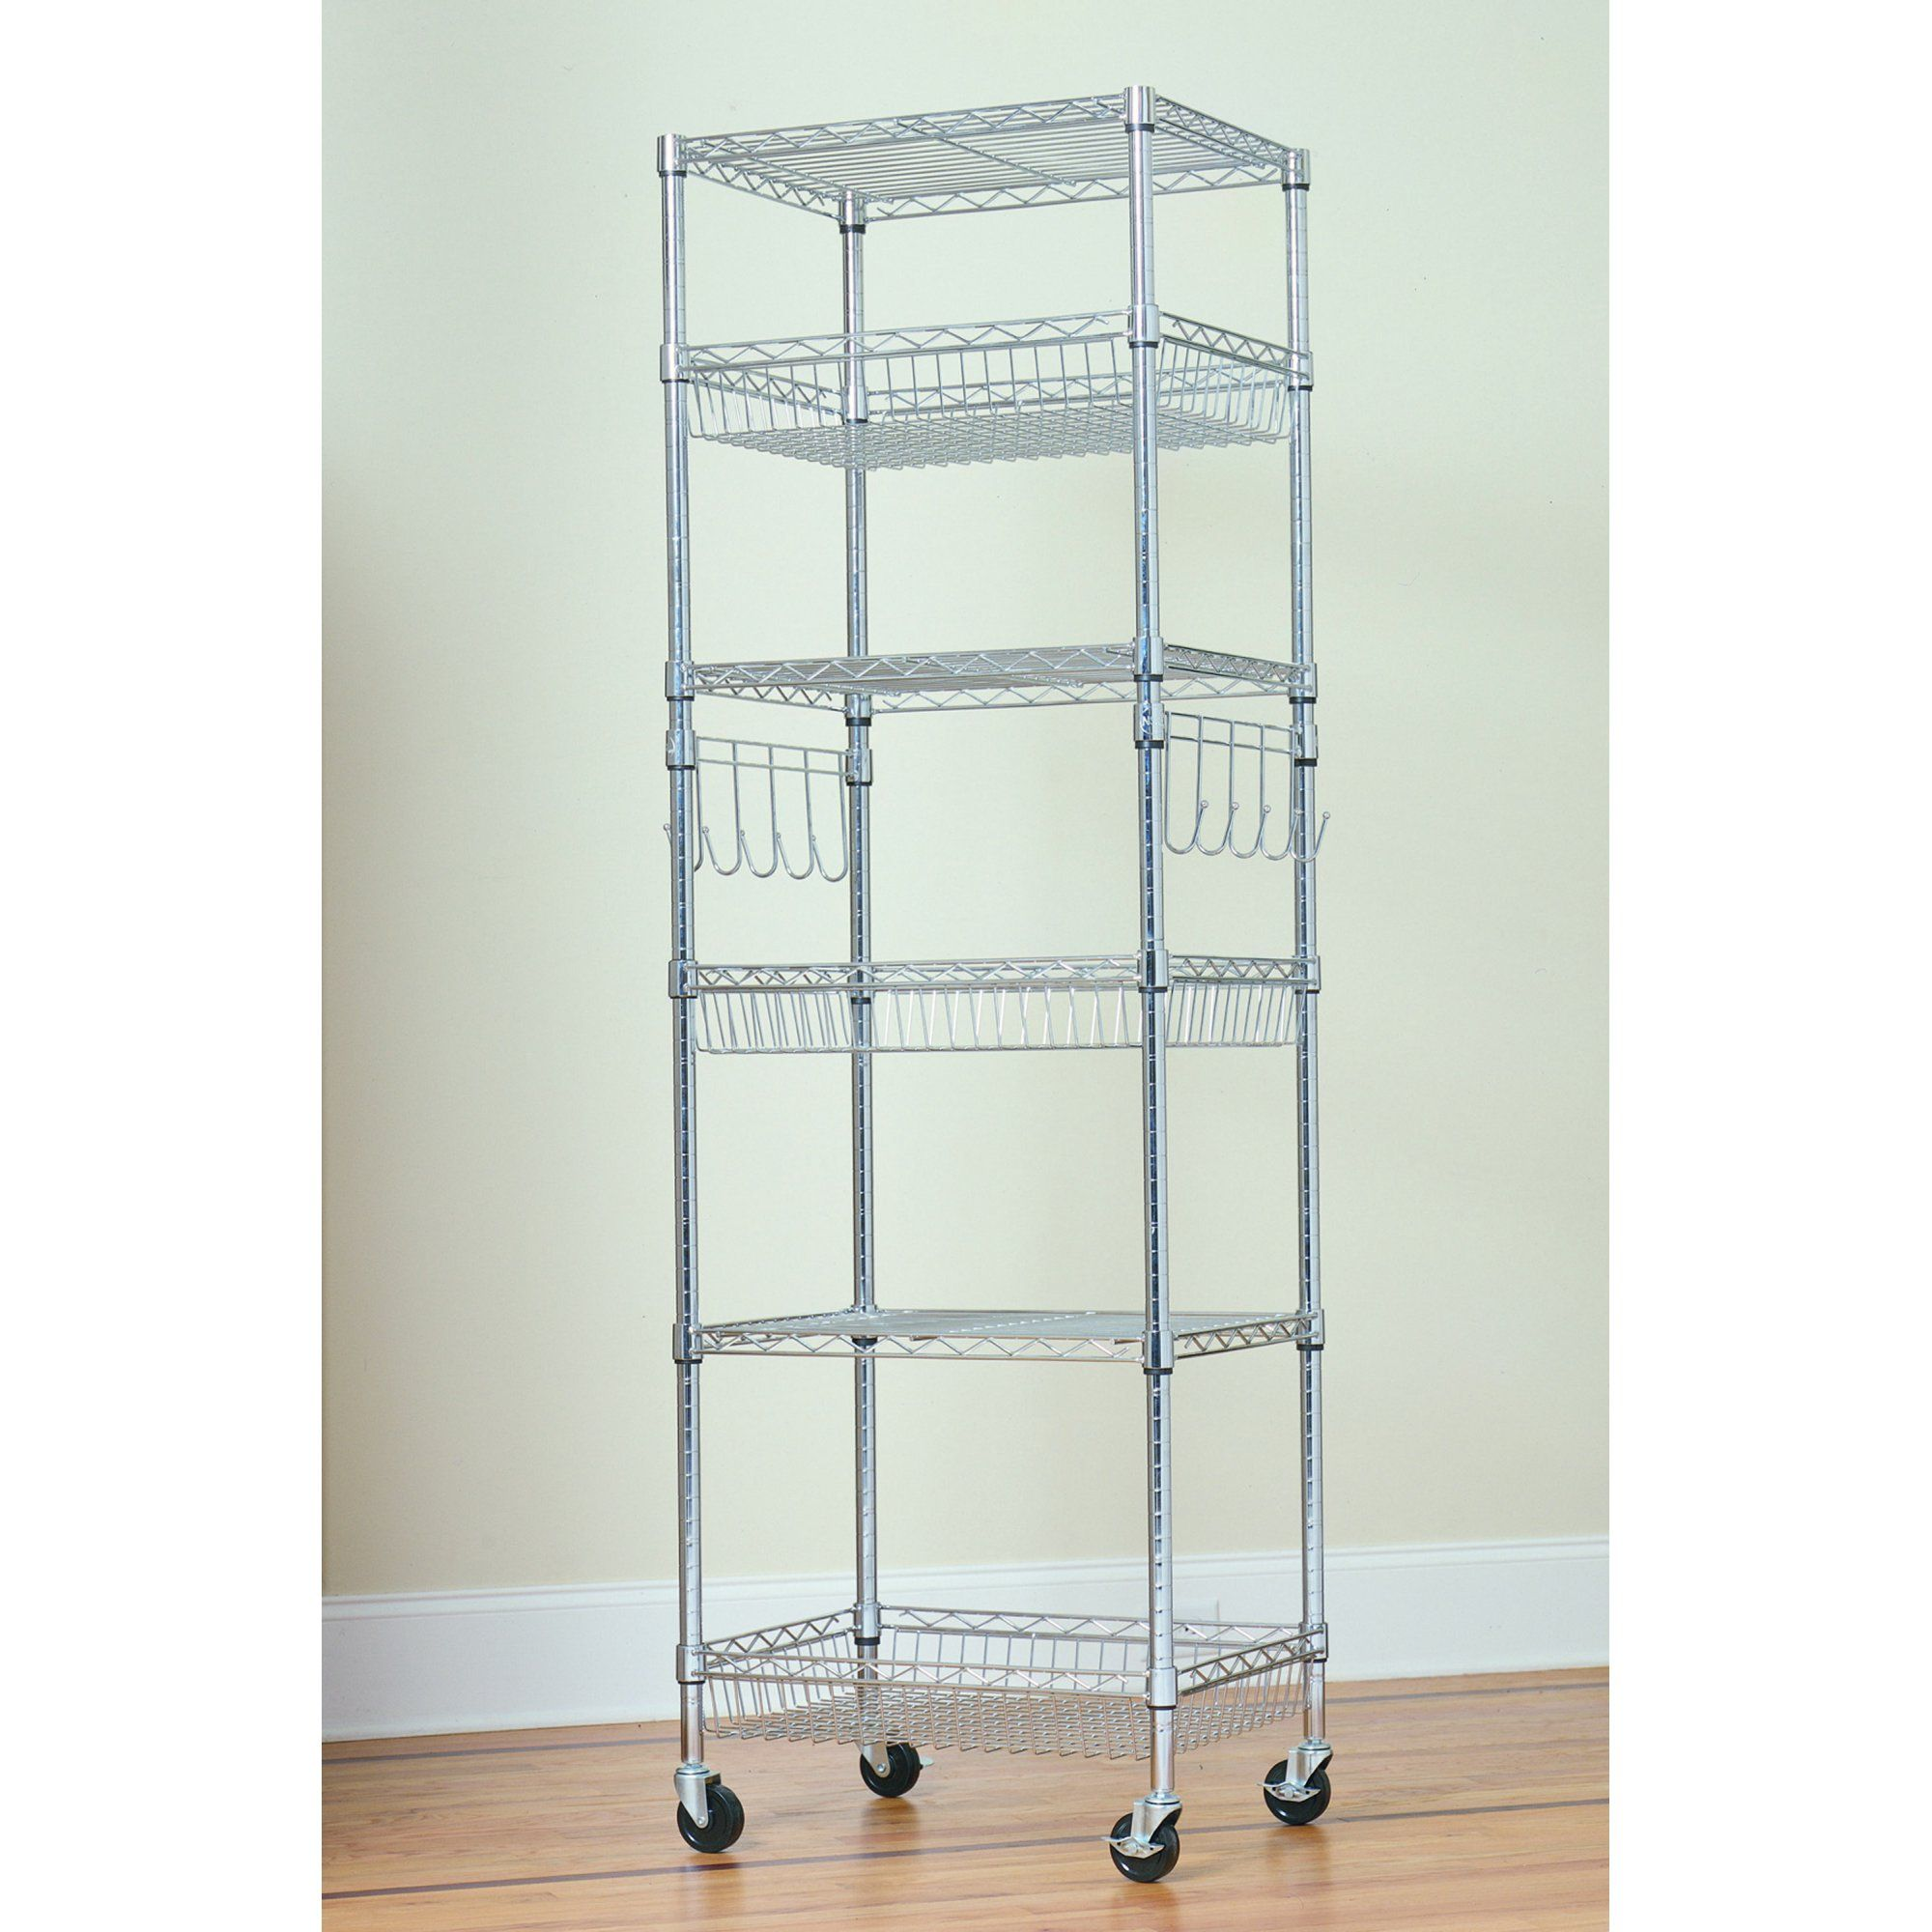 Hss 6 Tier Wire Shelving Tower Rack With Casters And Shelf Liners 18 Dx24 Wx75 H Chrome Walmart Com In 2020 Wire Storage Racks Wire Storage Wire Shelving